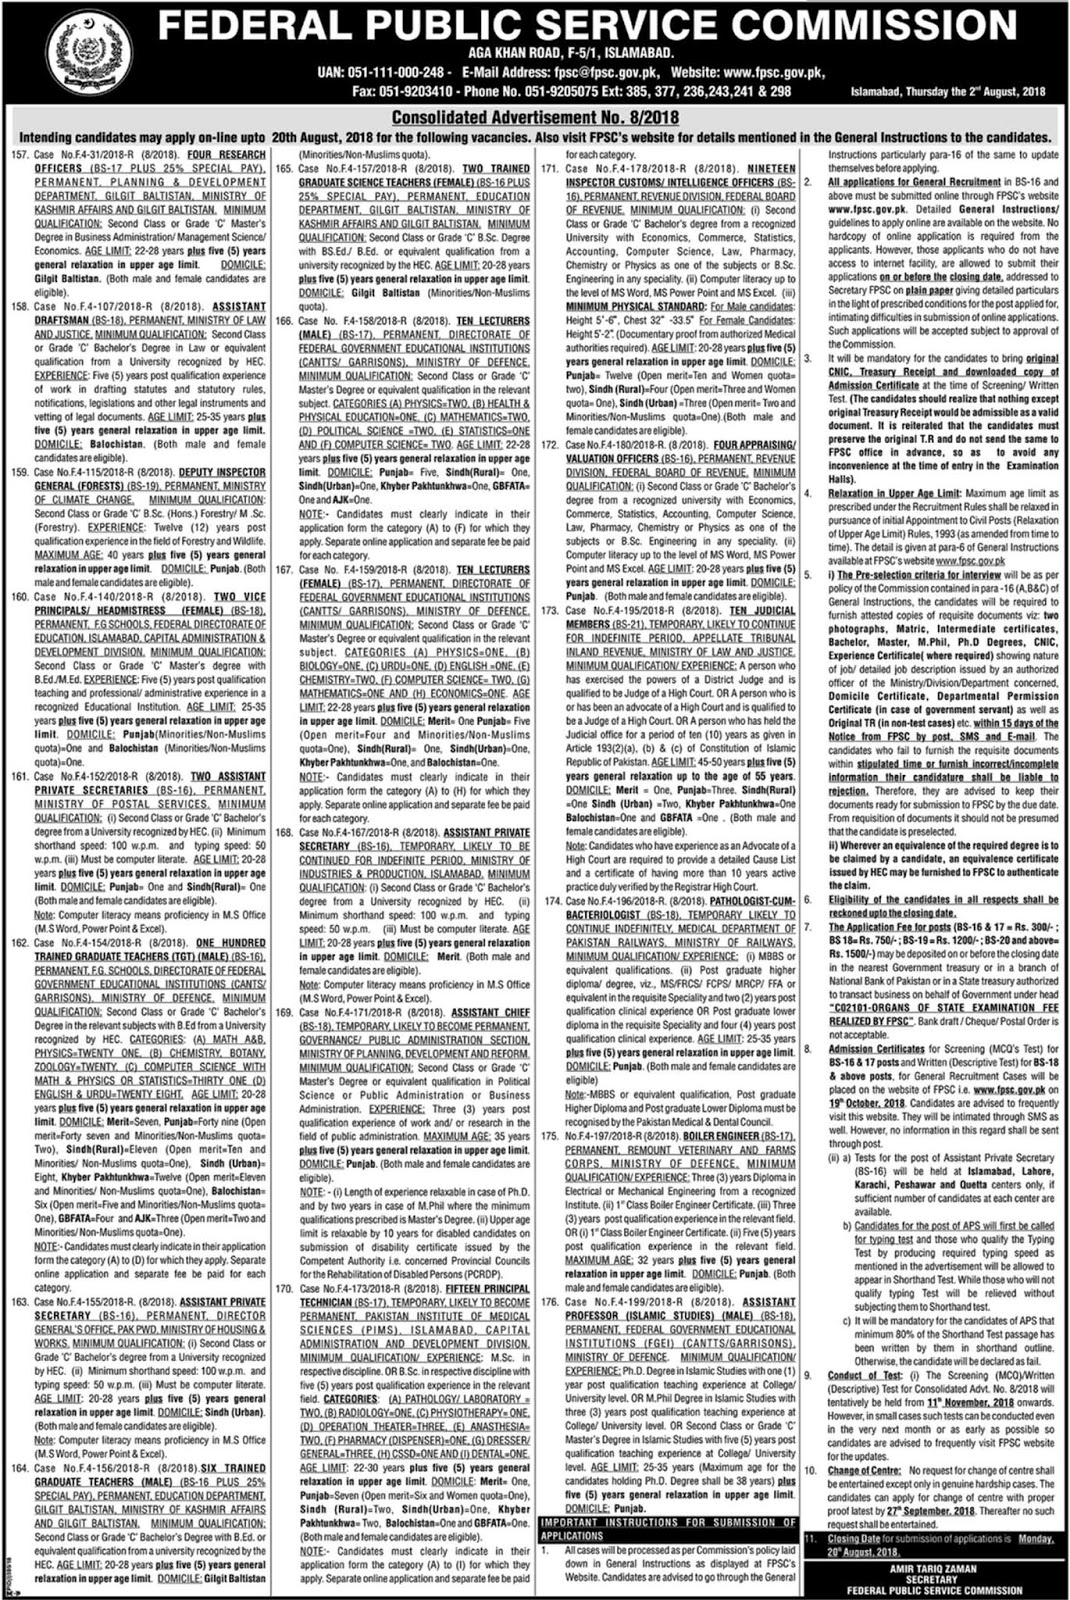 FPSC Jobs 05 Aug 2018 Federal Public Service Commission